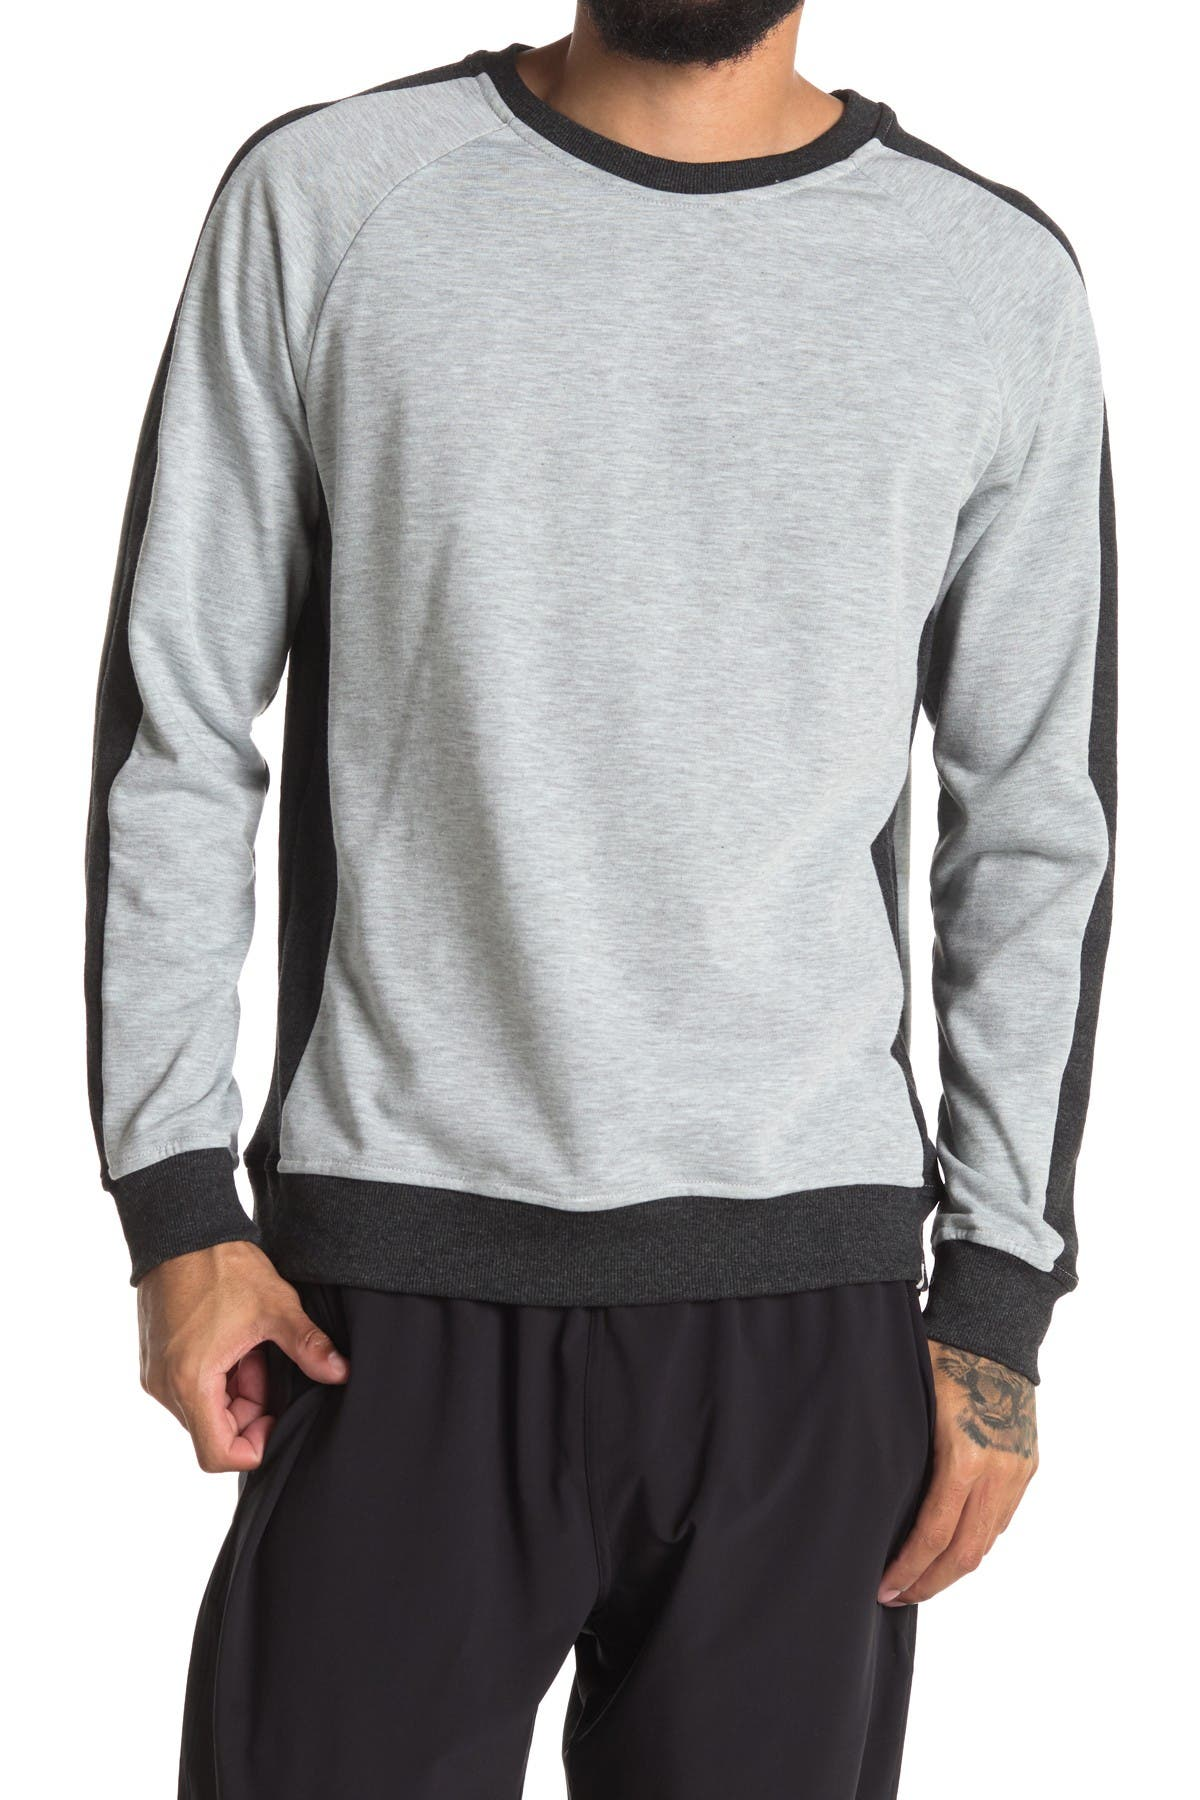 Image of Sovereign Code Damion Raglan Pullover